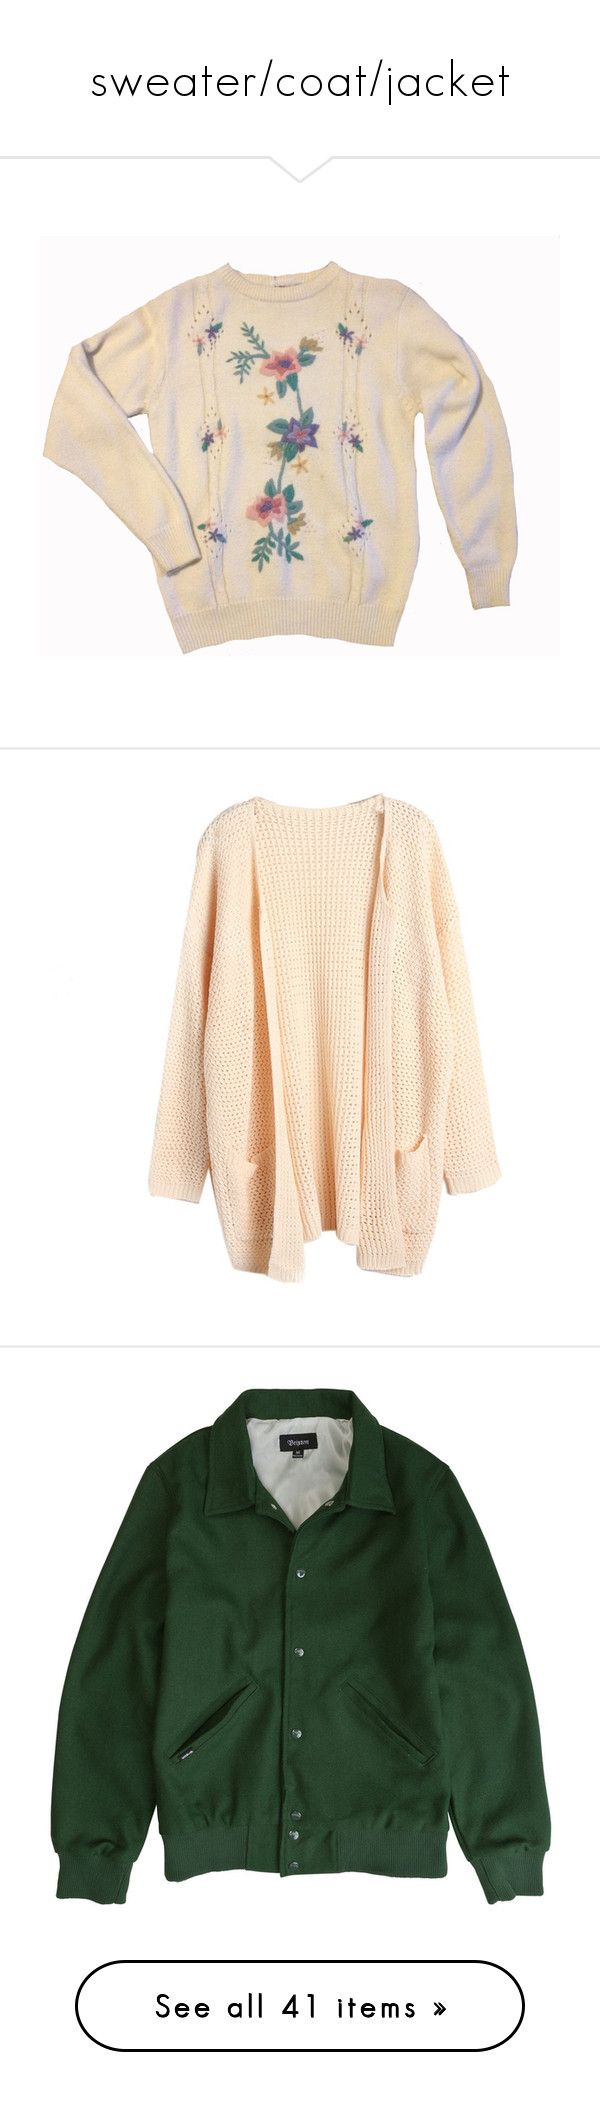 """""""sweater/coat/jacket"""" by signofthetimesx ❤ liked on Polyvore featuring tops, sweaters, shirts, jumpers, floral sweater, cut-out shoulder sweaters, embroidered sweater, floral embroidered sweater, pink polka dot shirt and cardigans"""